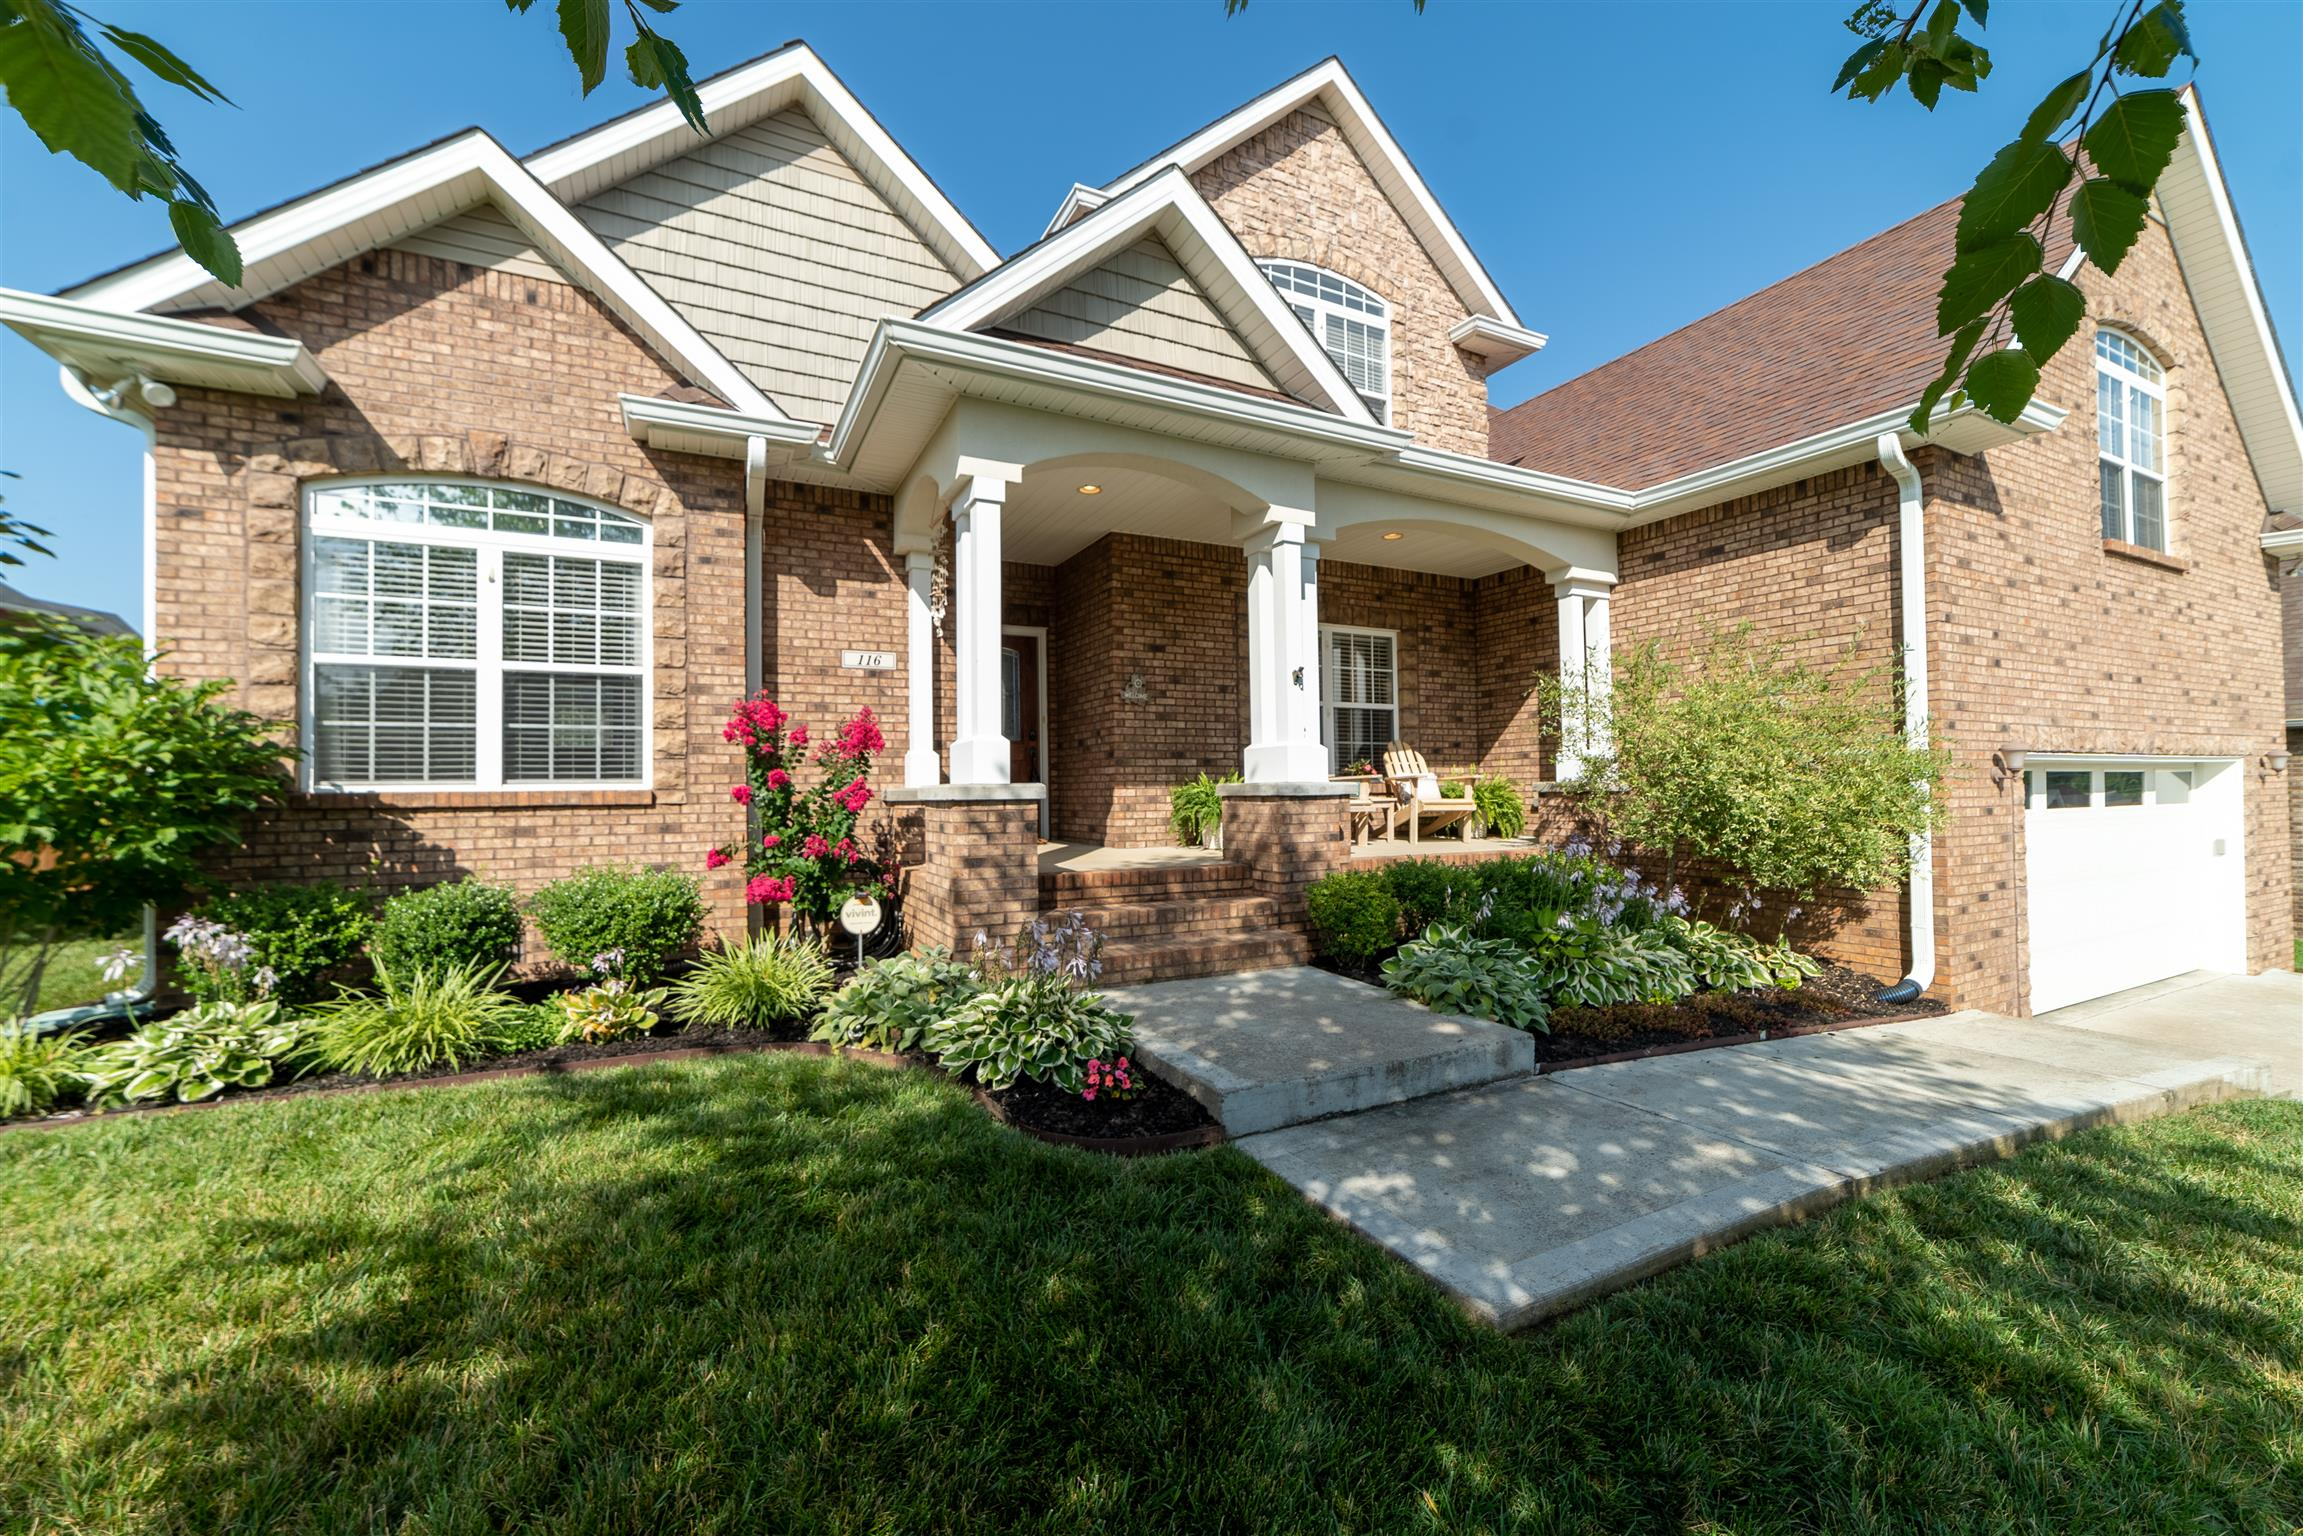 116 SUMMER TERRACE , Clarksville, TN 37040 - Clarksville, TN real estate listing